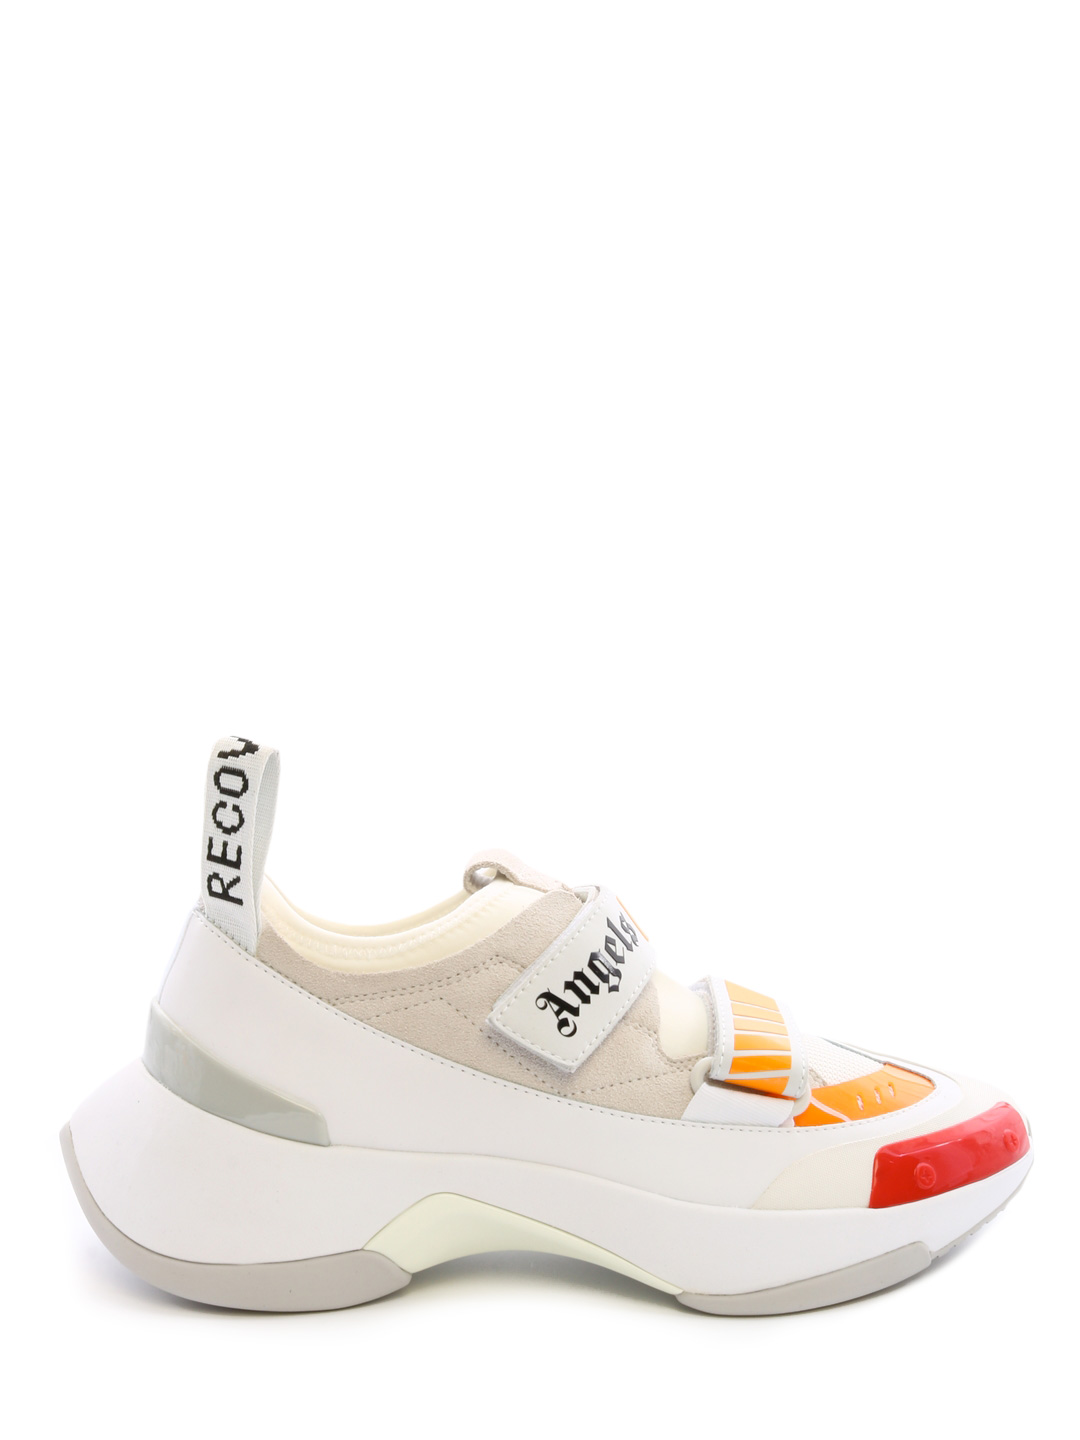 Sneakers Recovery White